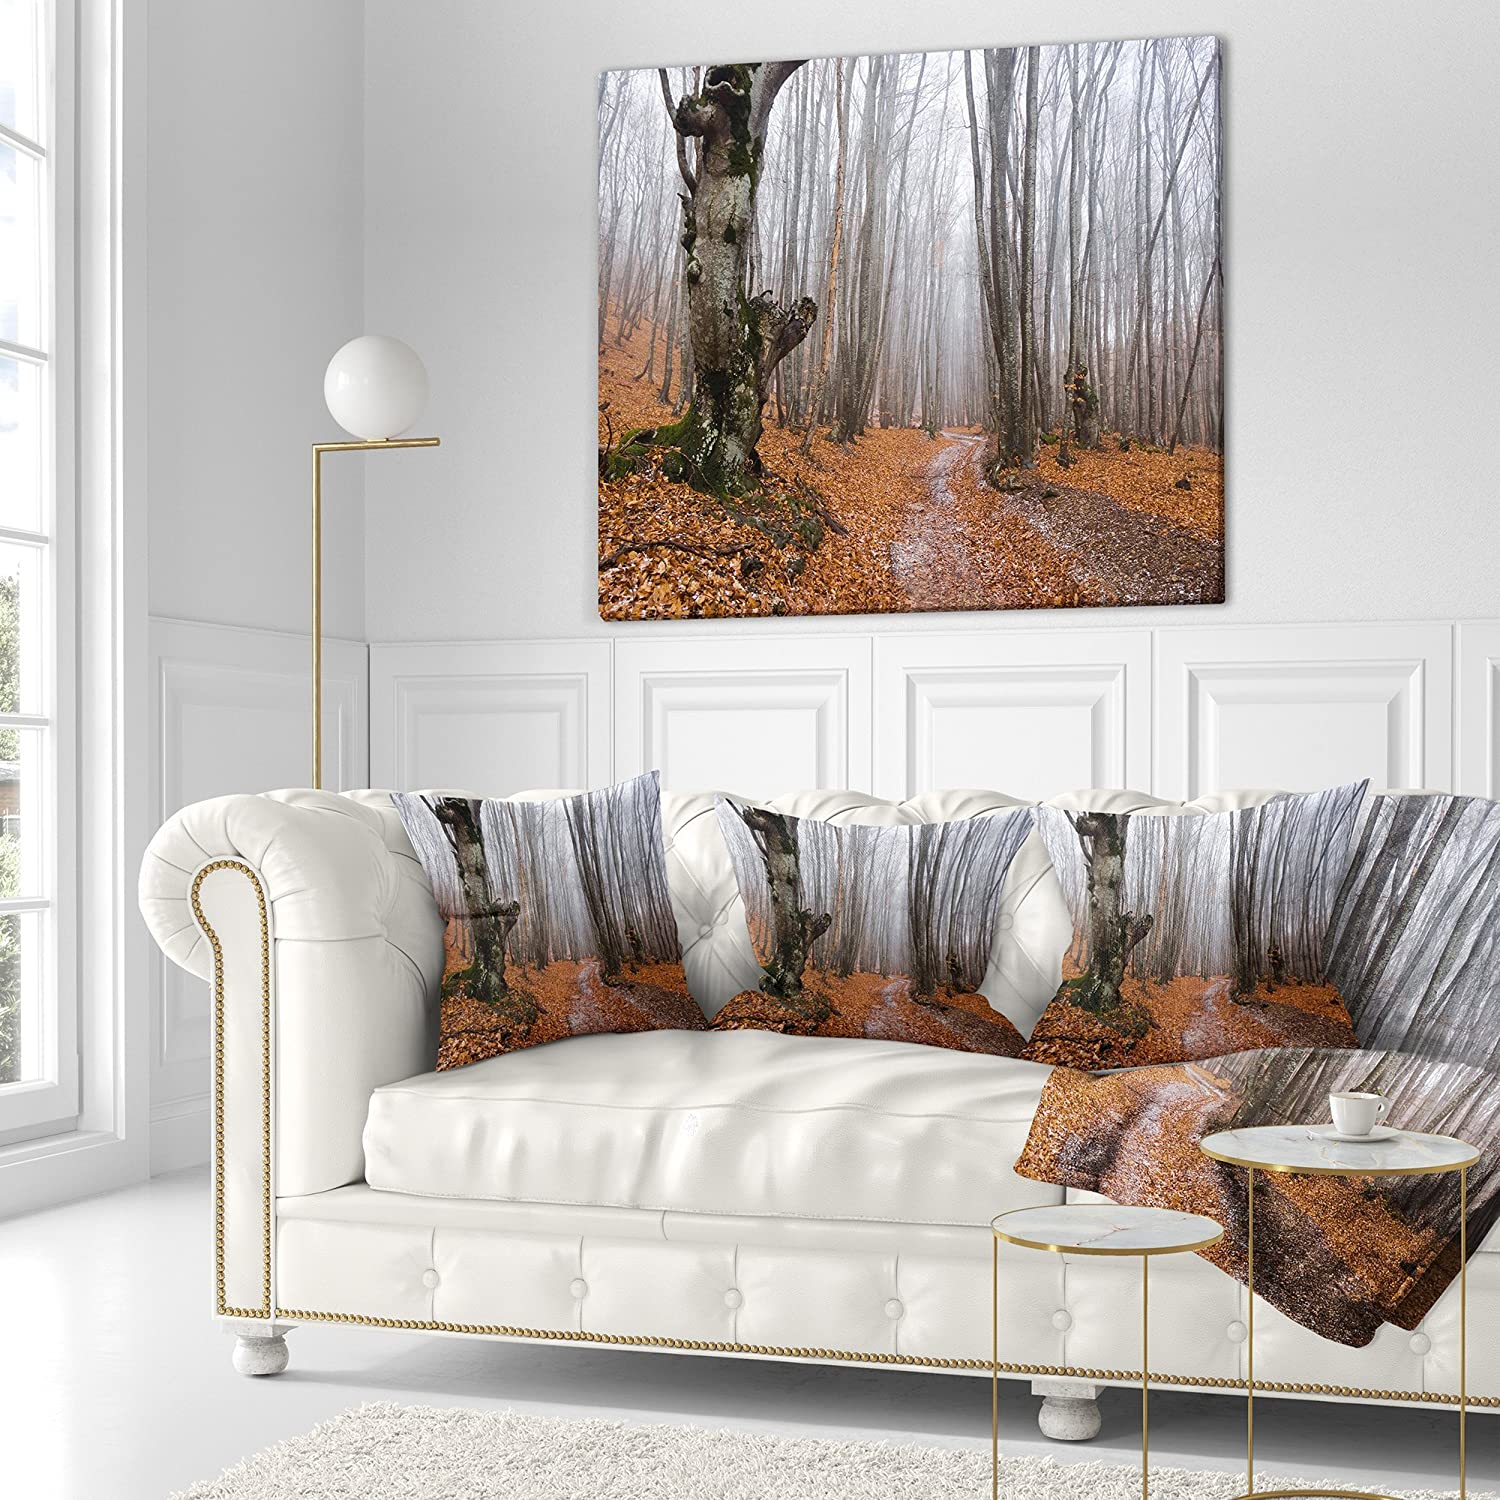 x 16 in Sofa Throw Pillow 16 in Insert Printed On Both Side Designart CU13948-16-16 Road Fallen Leaves Modern Forest Cushion Cover for Living Room in